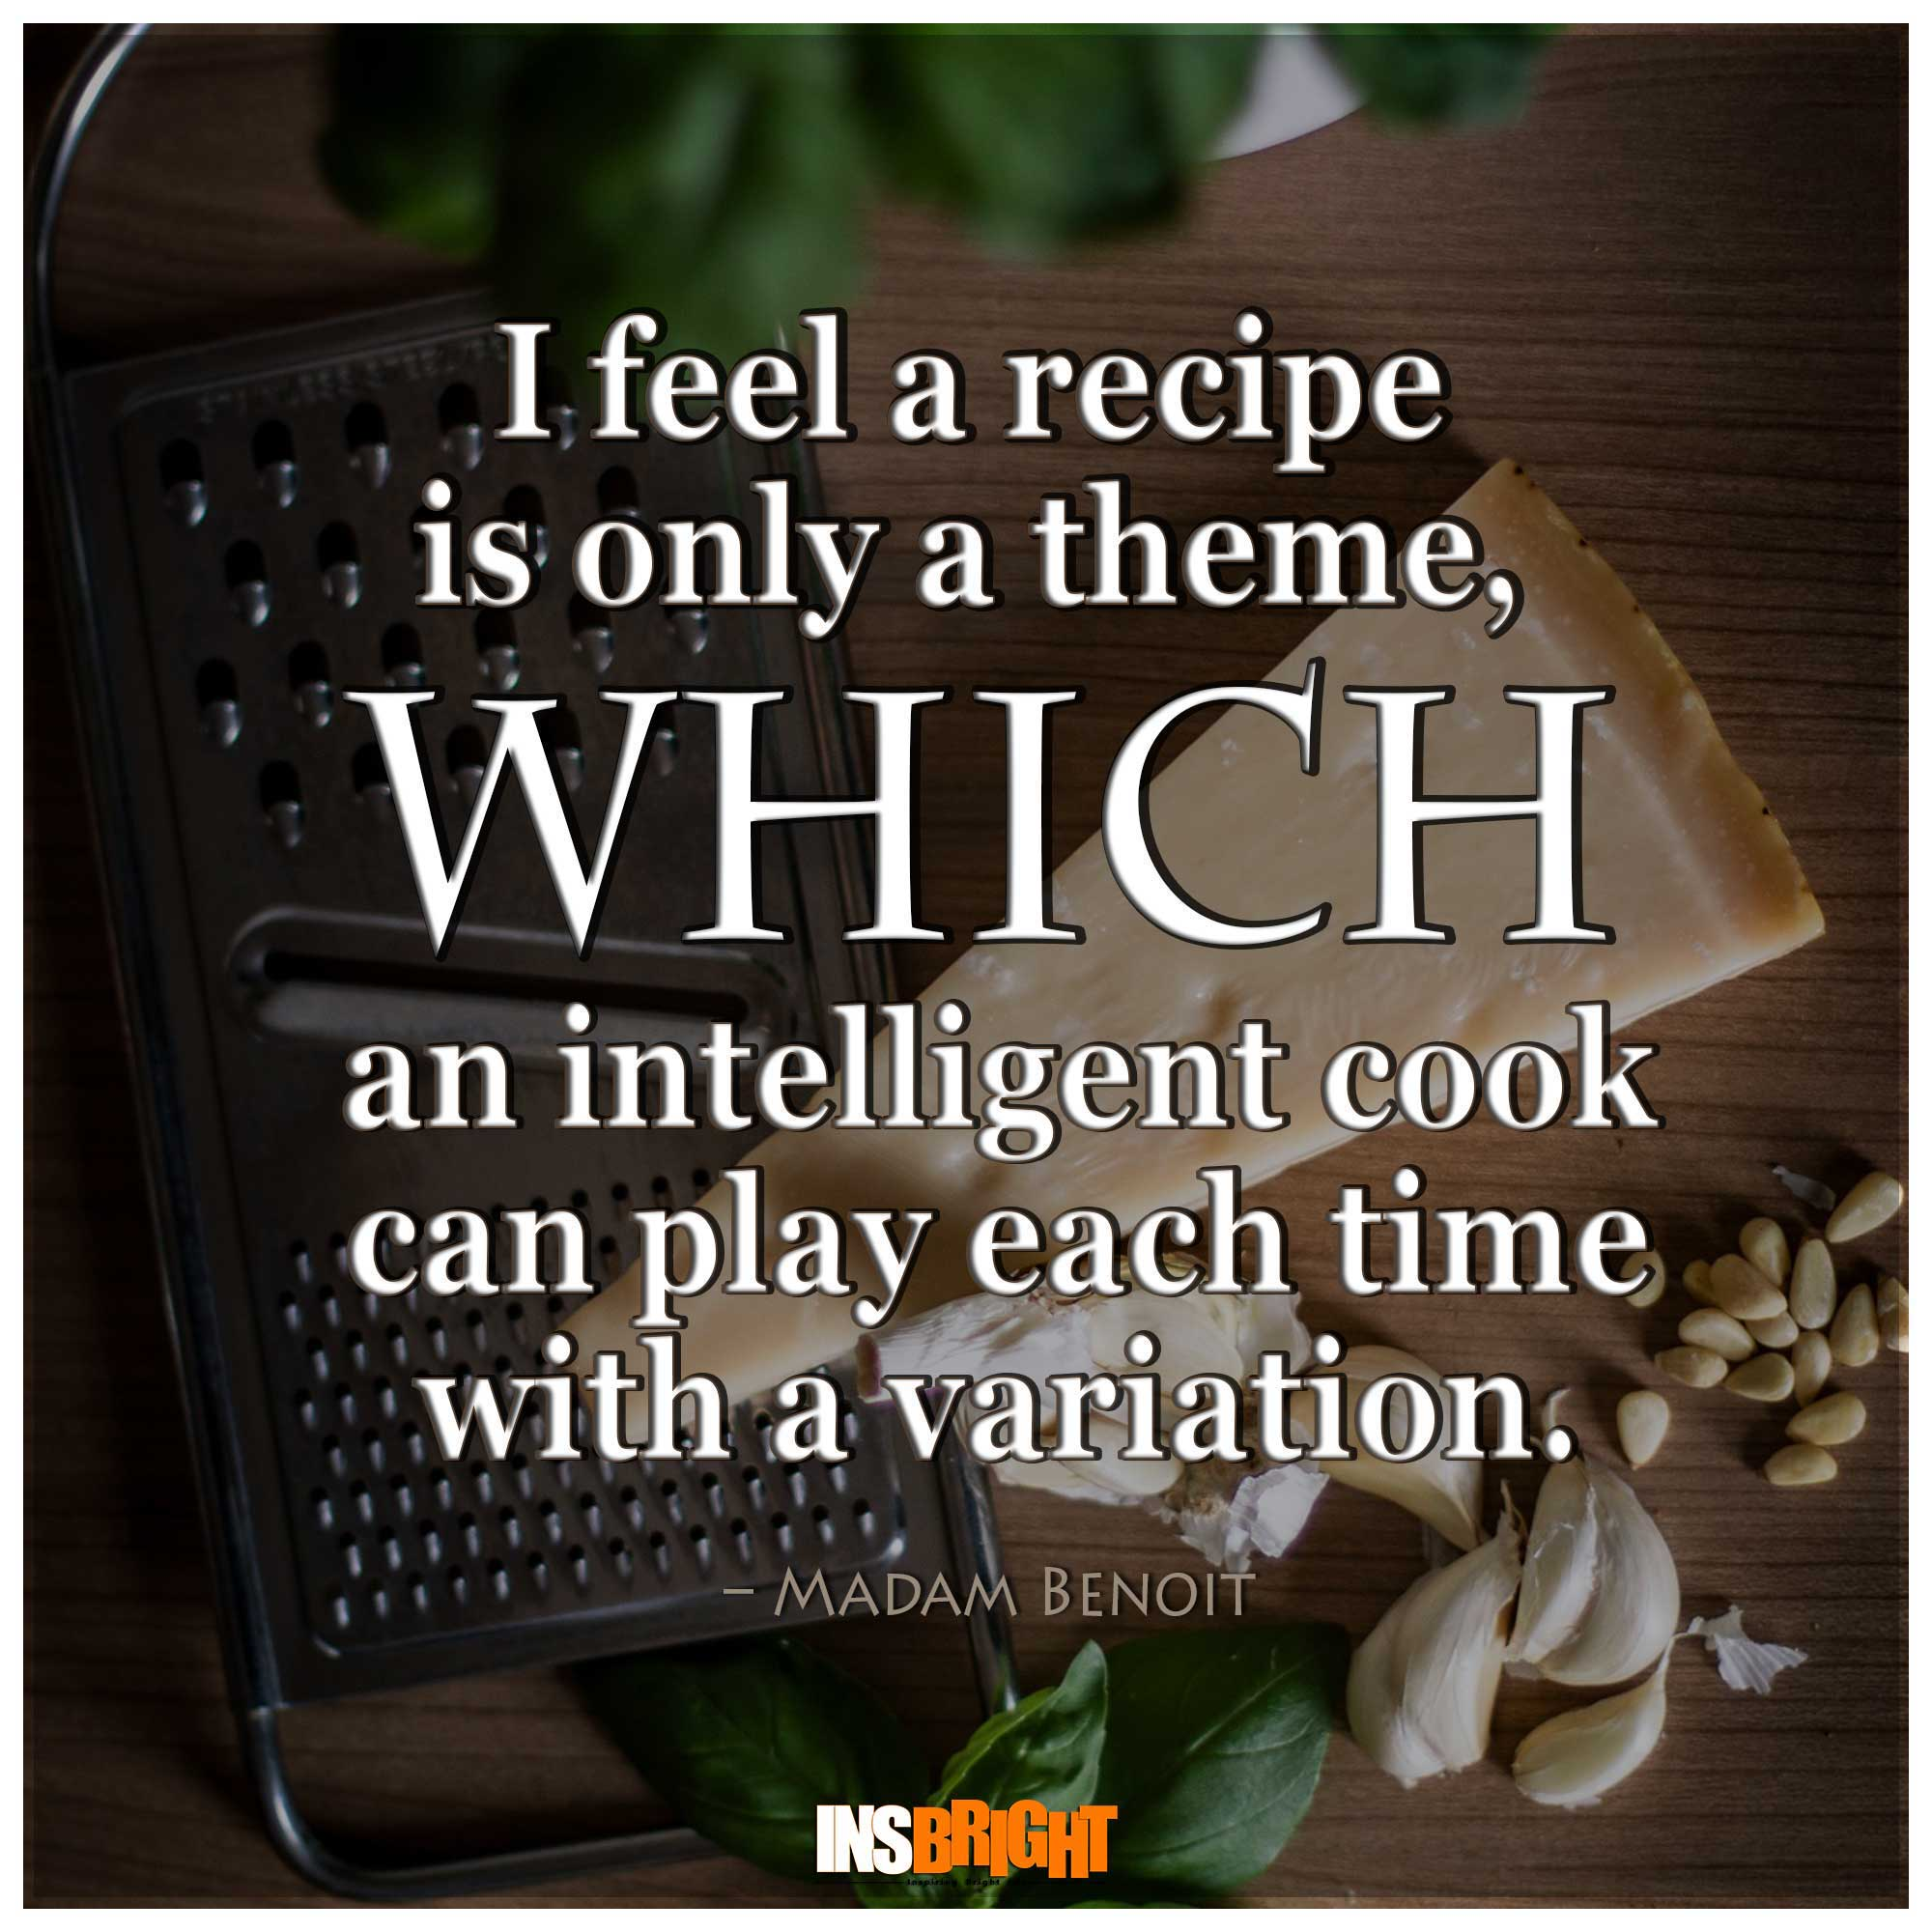 Cooking Quotes From Famous Chefs Pinterest thumbnail